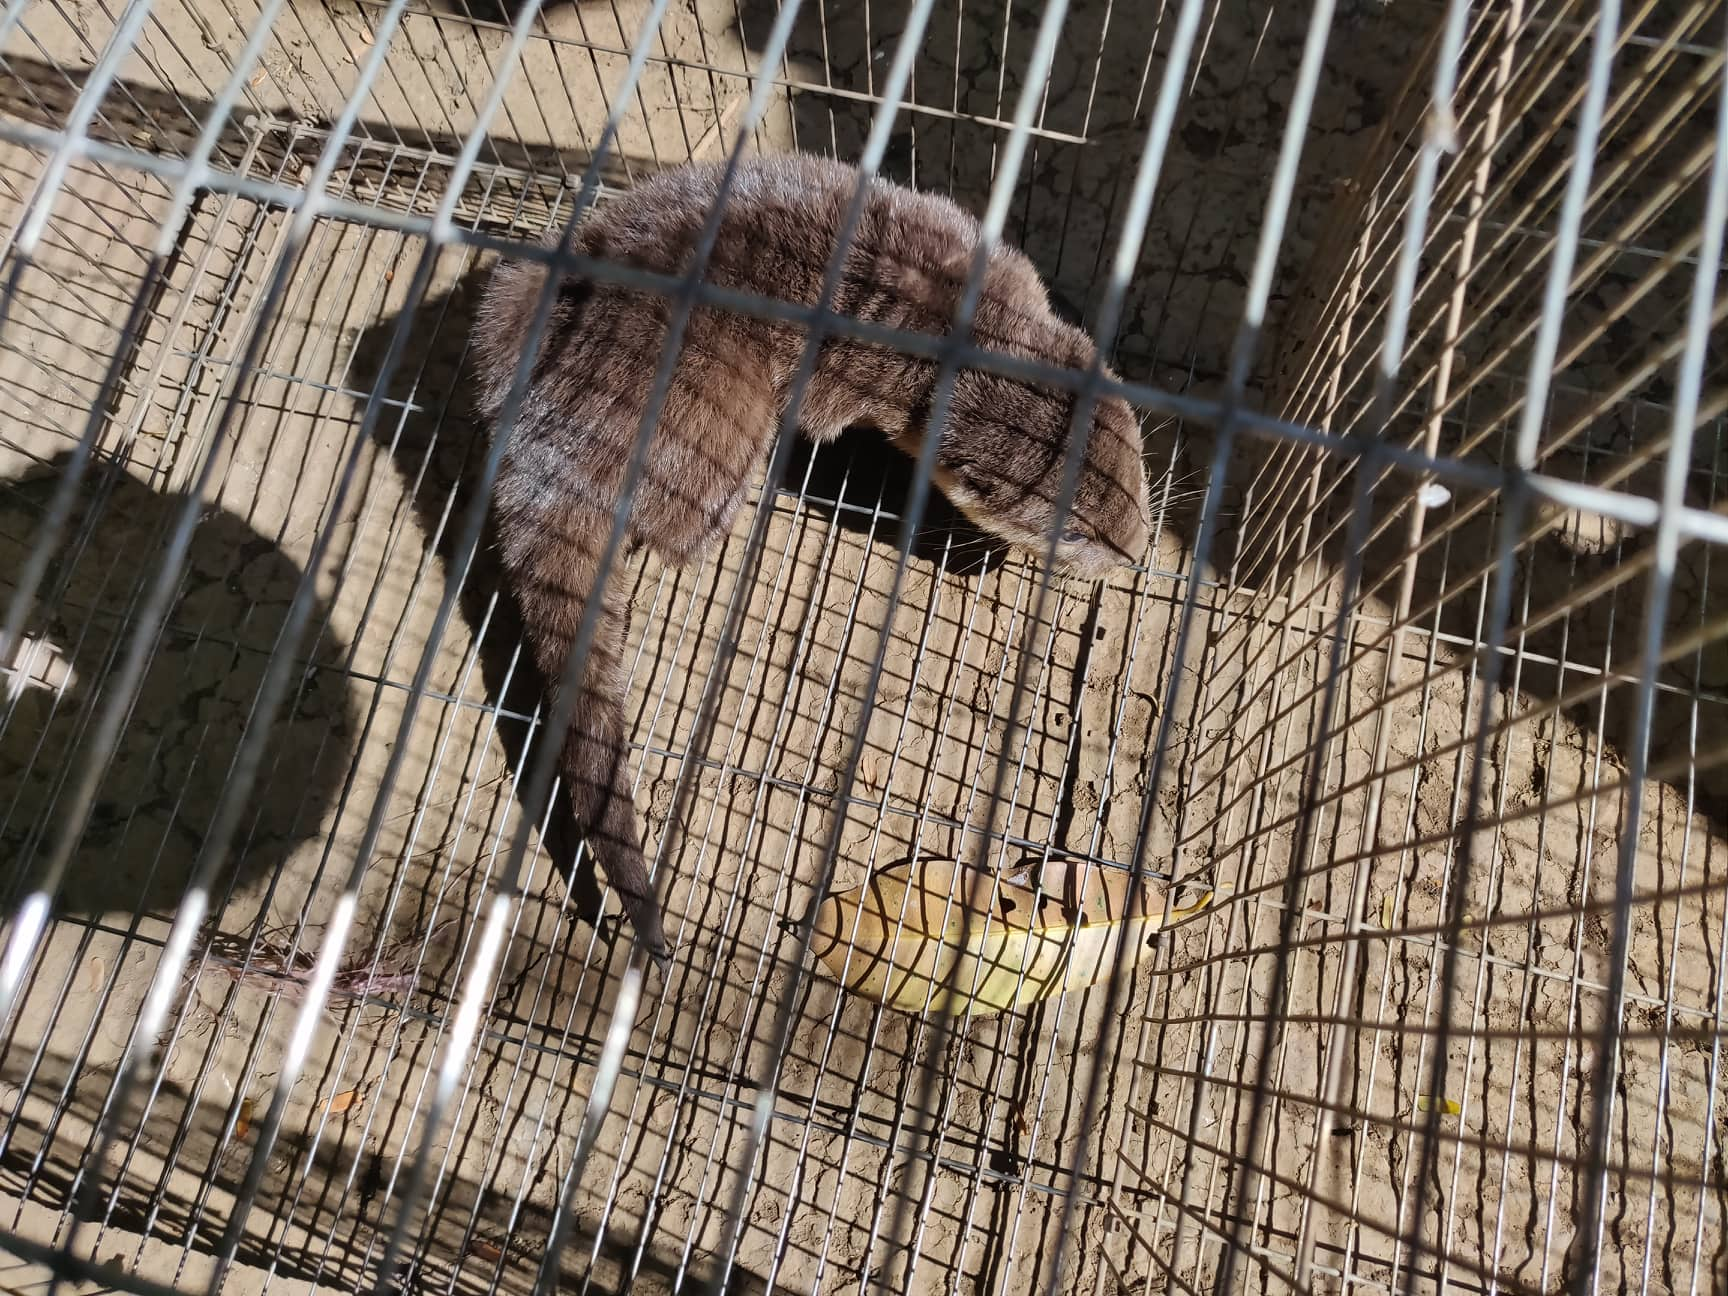 Smooth-coated otter rescue operation Smooth coated Otter Wildlife Traffiking